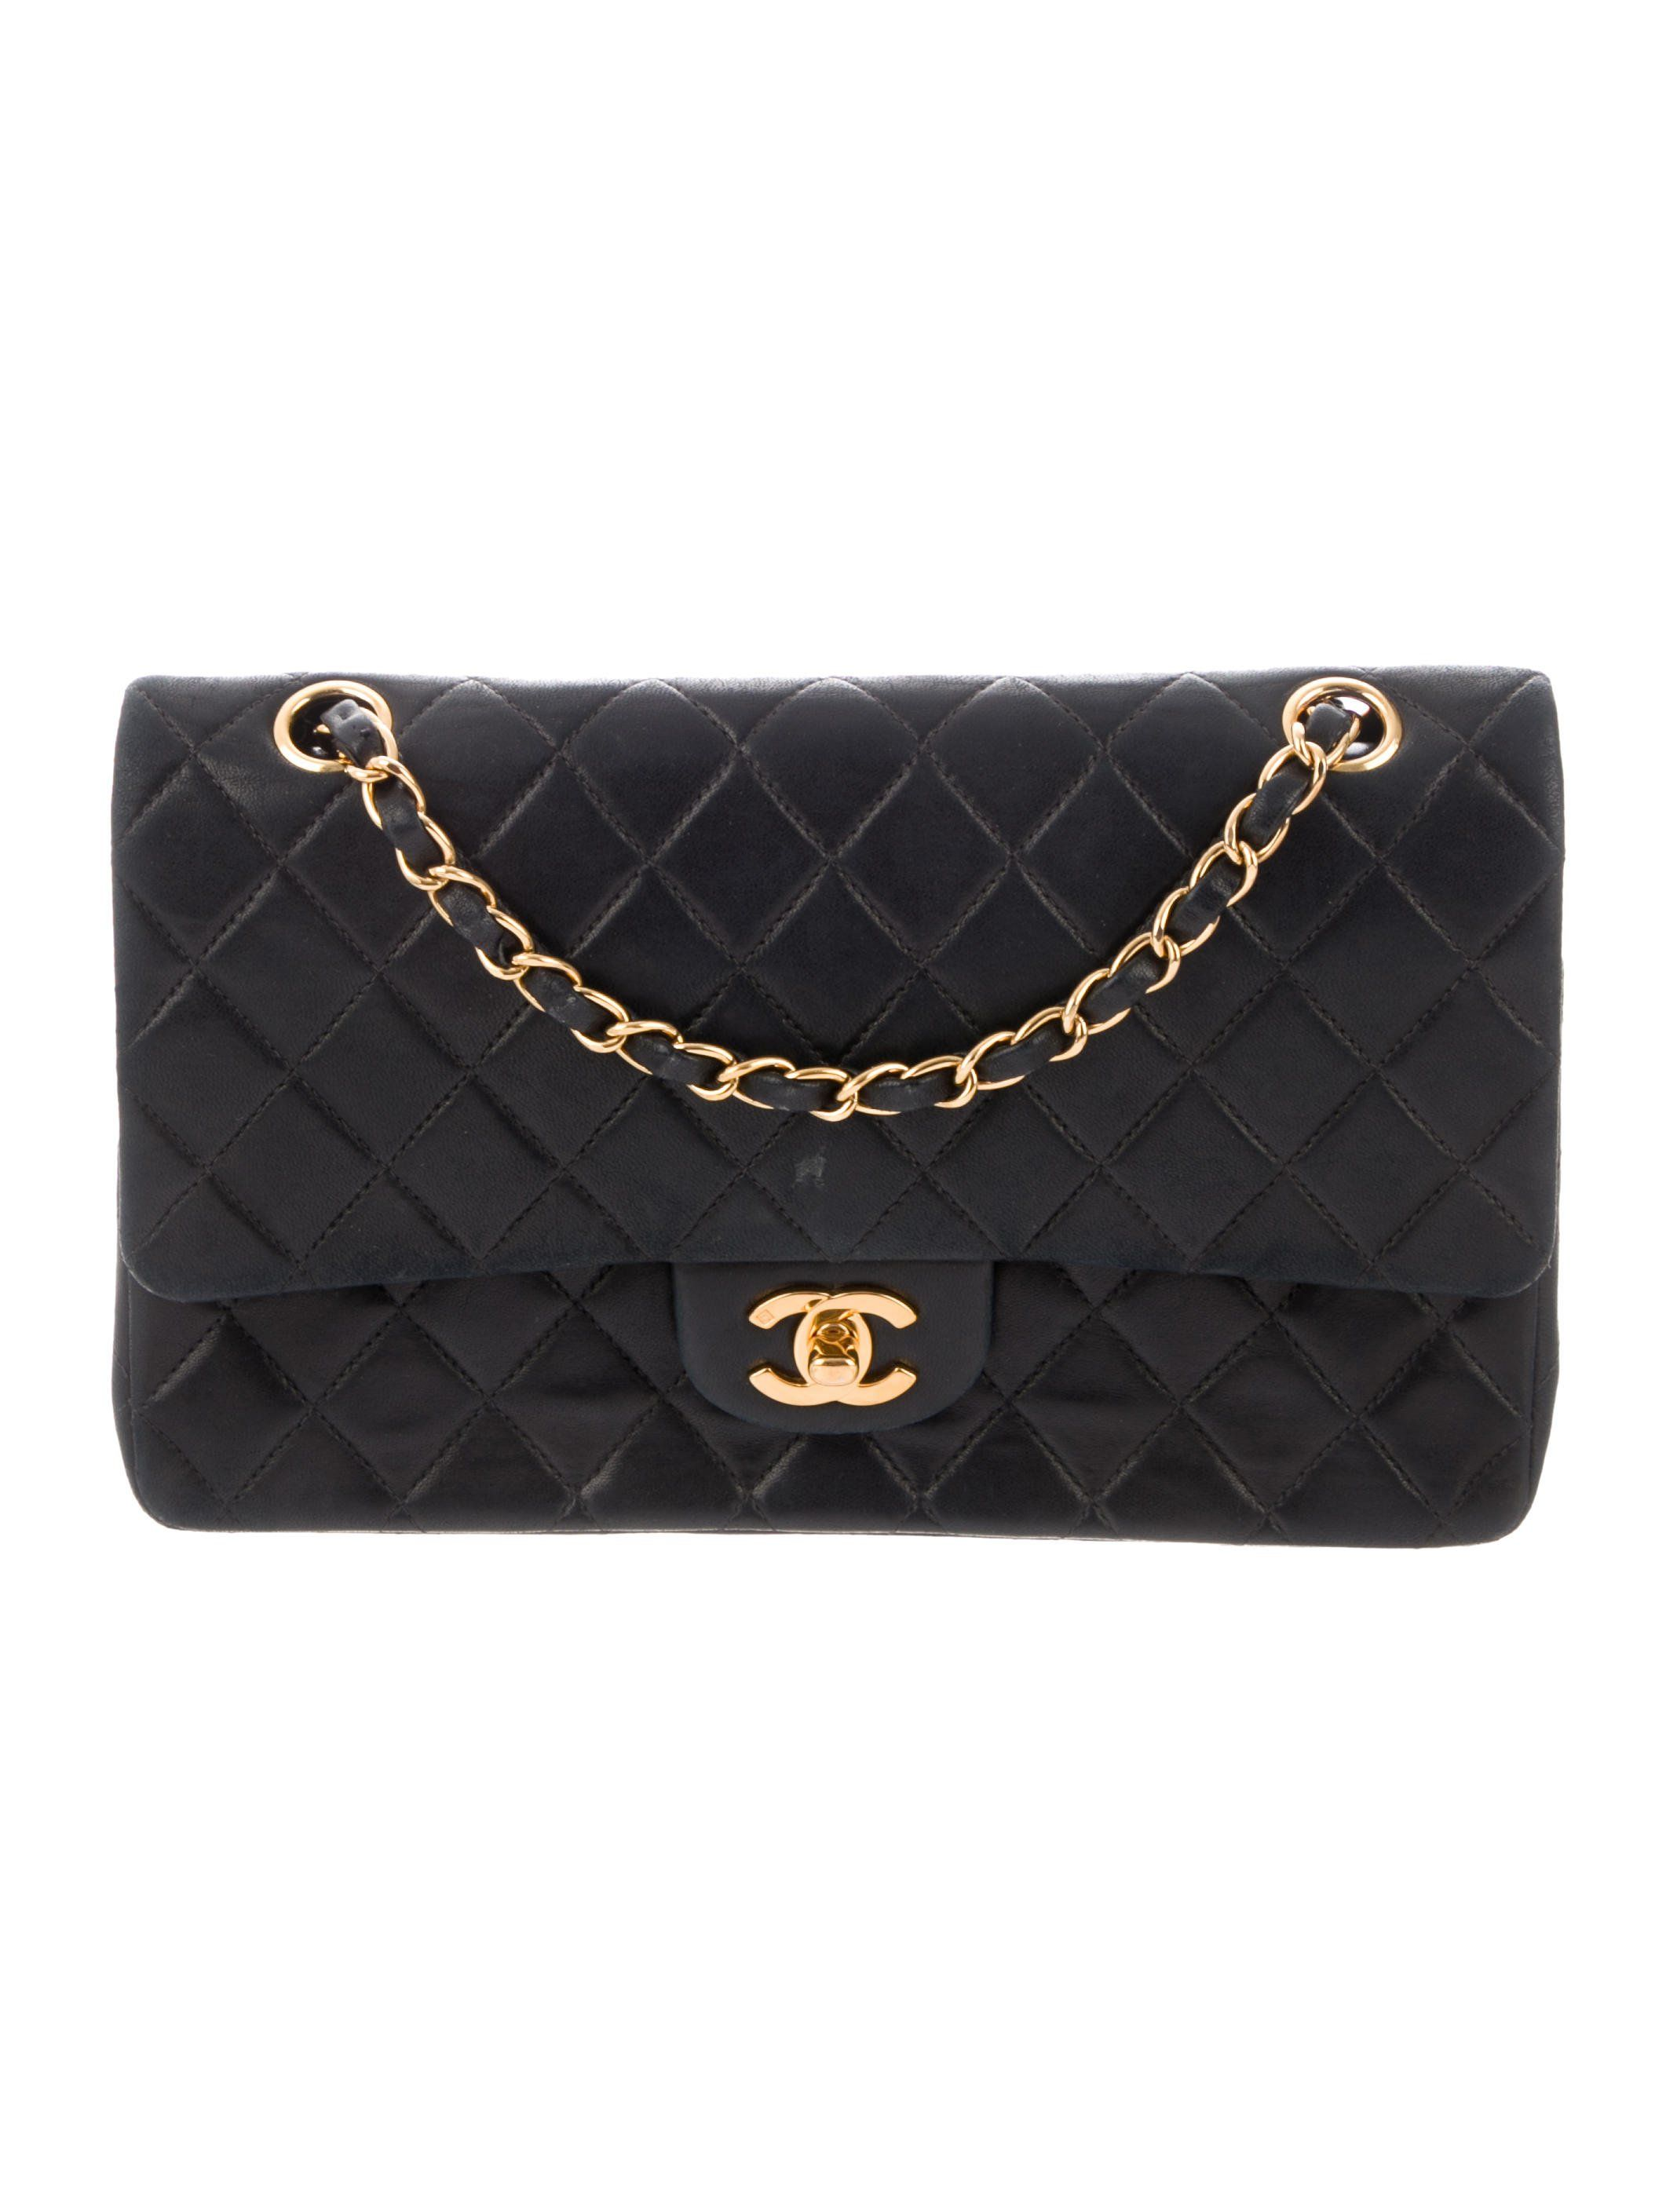 32d41643e67a Black quilted lambskin Chanel Medium Double Flap bag with gold-tone  hardware, convertible chain